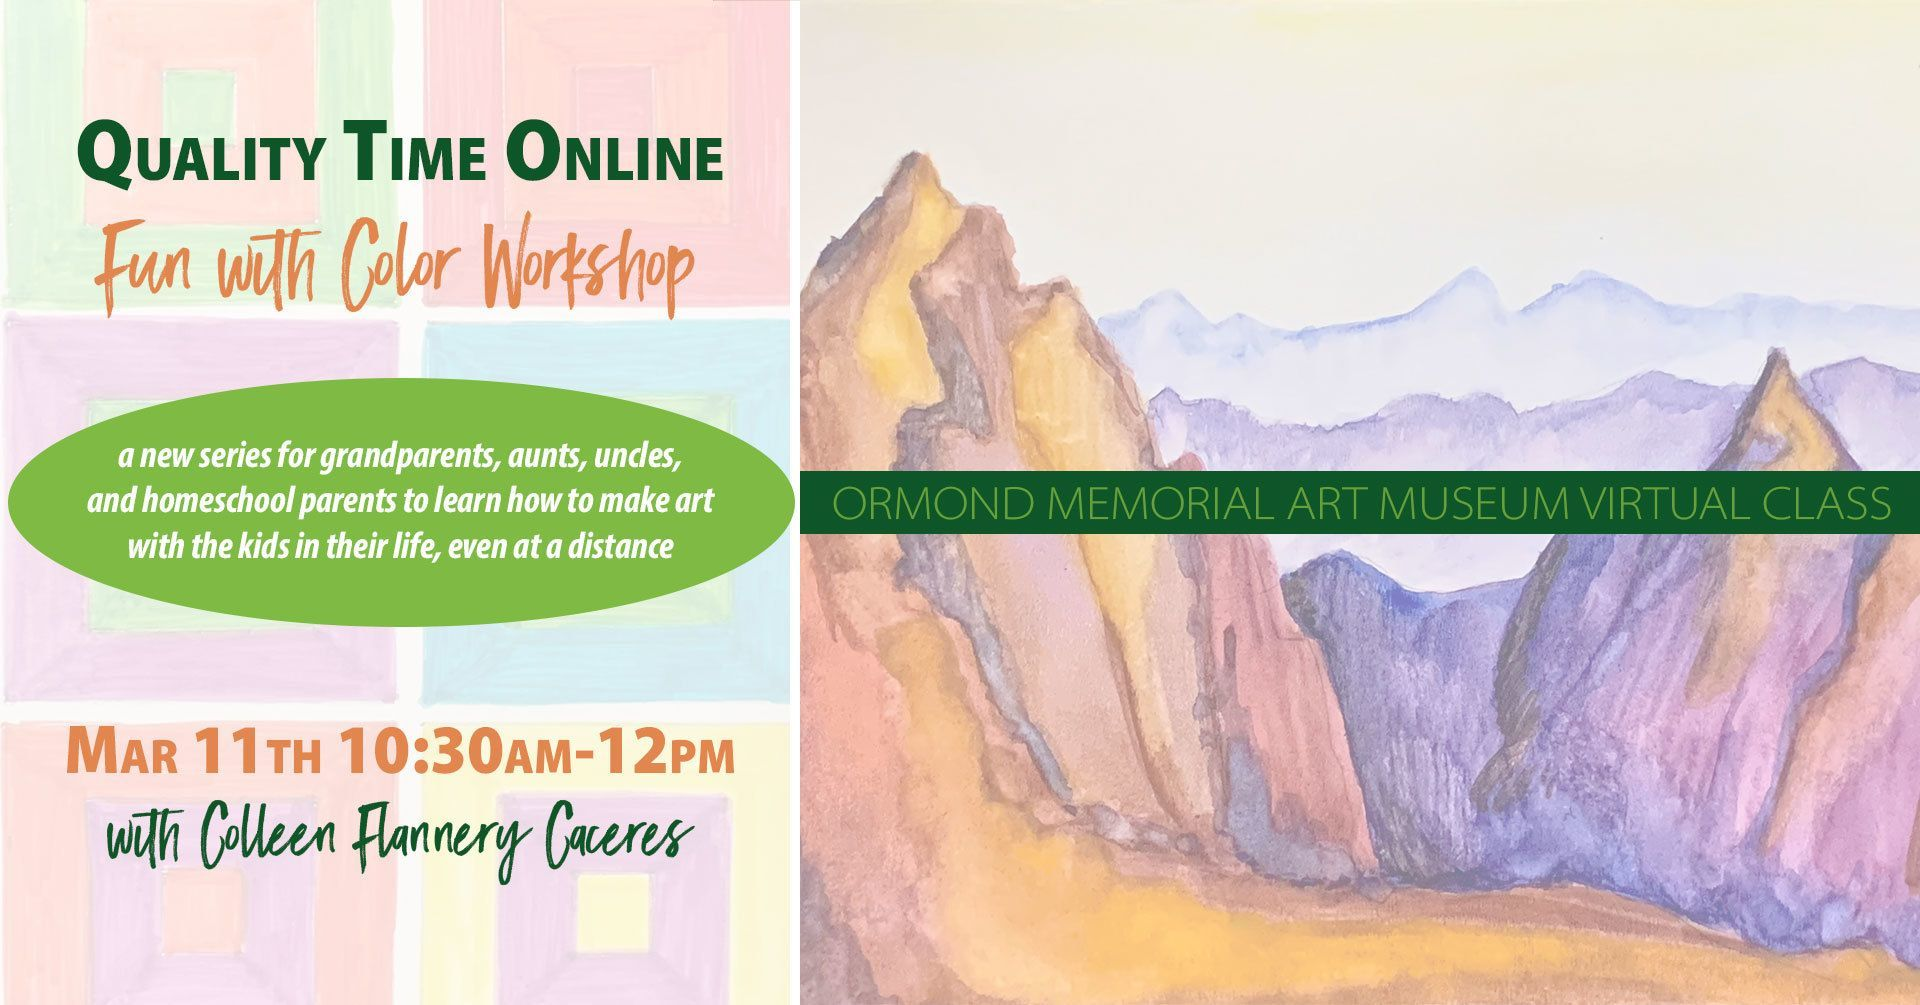 Fun with Color: A Quality Time Online Workshop